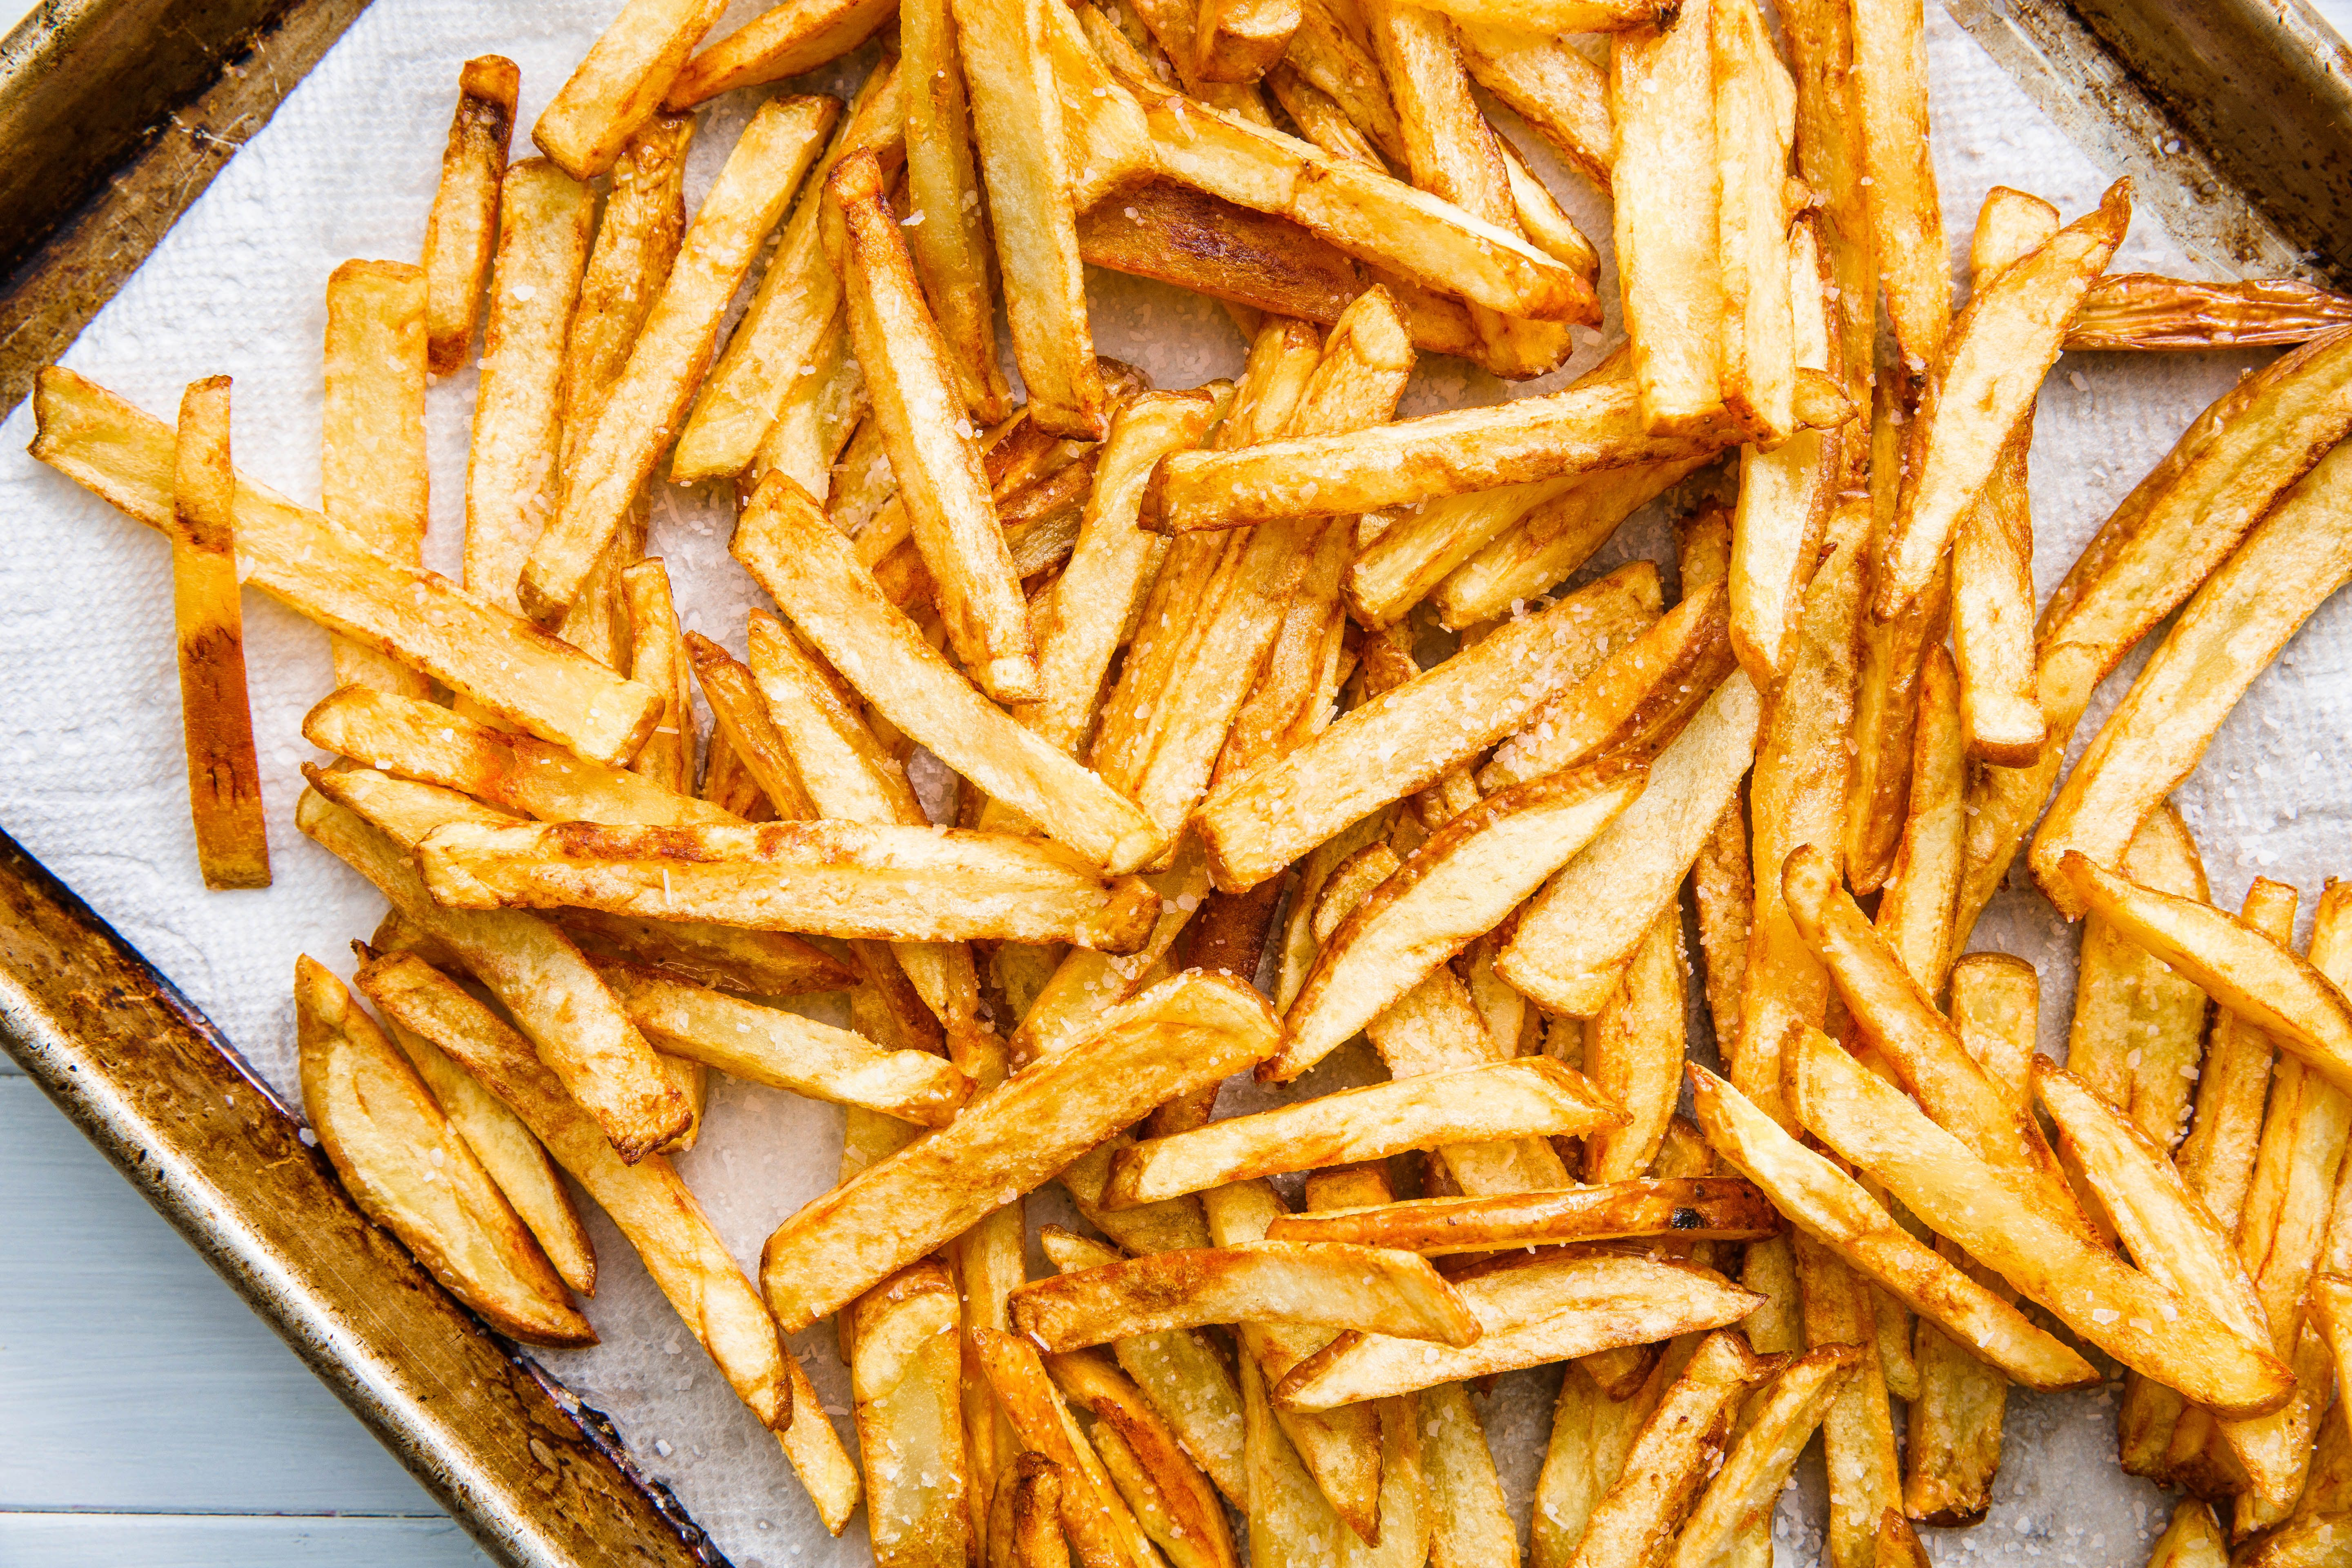 Best French Fries Recipe How To Make French Fries